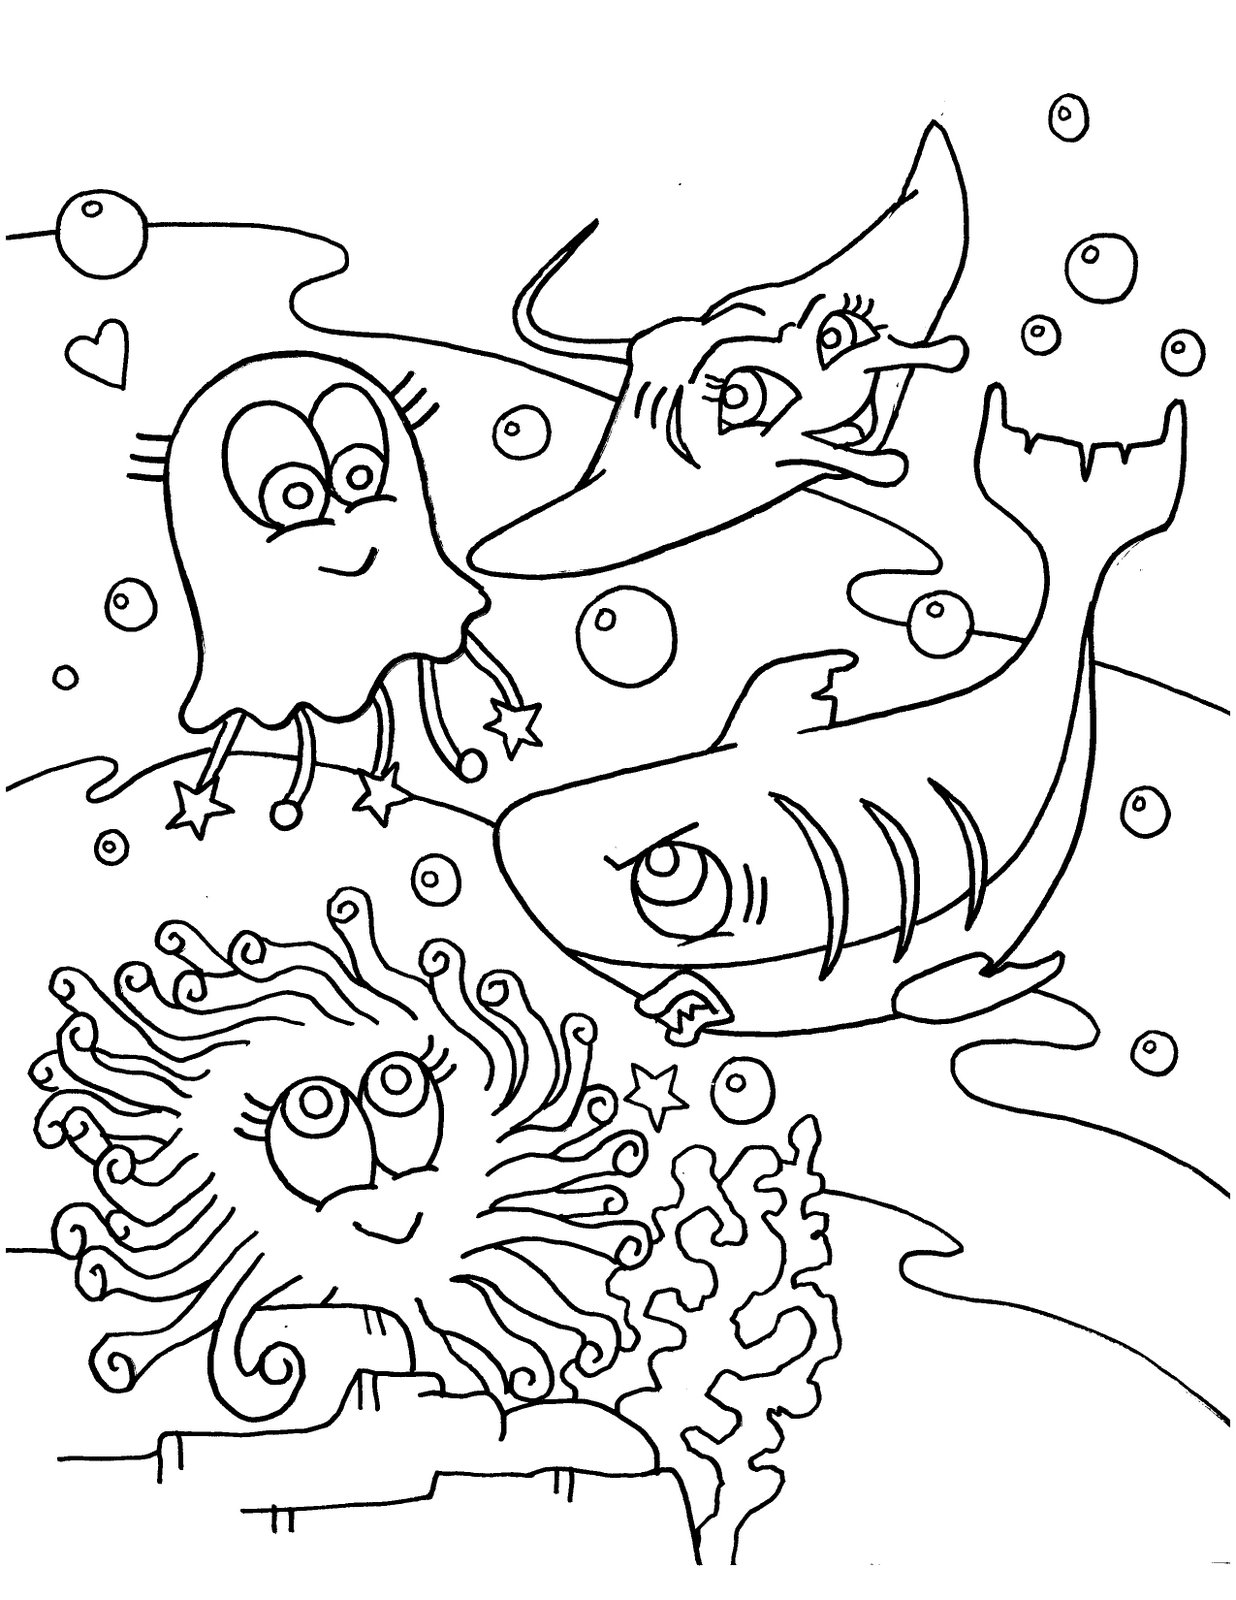 Shark Coloring Pages 2 Coloring Kids